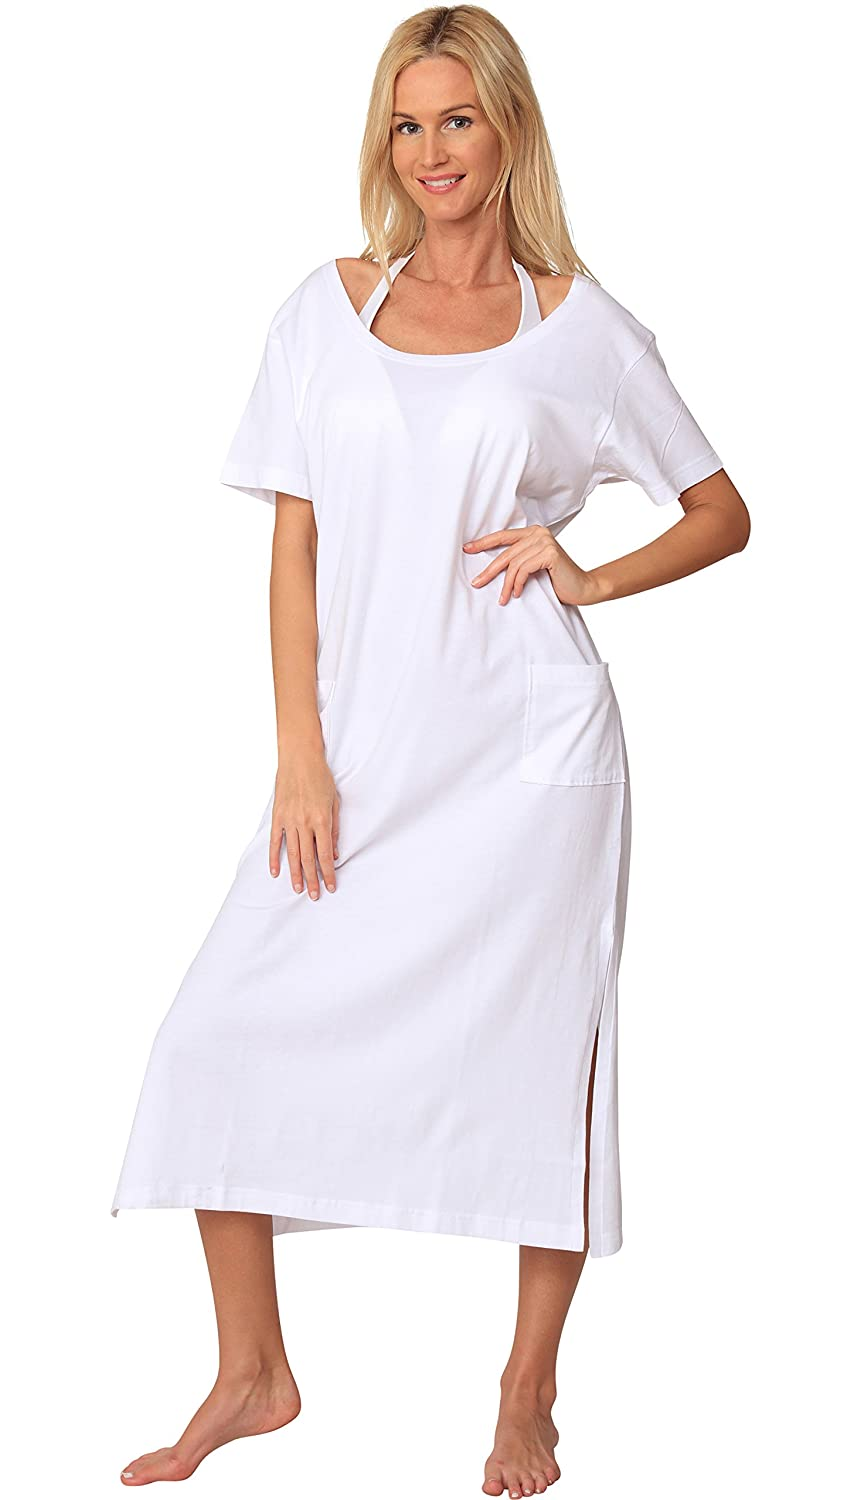 25a723dbf4b9d Chinabrands.com: Dropshipping & Wholesale cheap SLR Brands Plus Size Cotton Stretchy  Flowy Loose Fit Tunic C online.